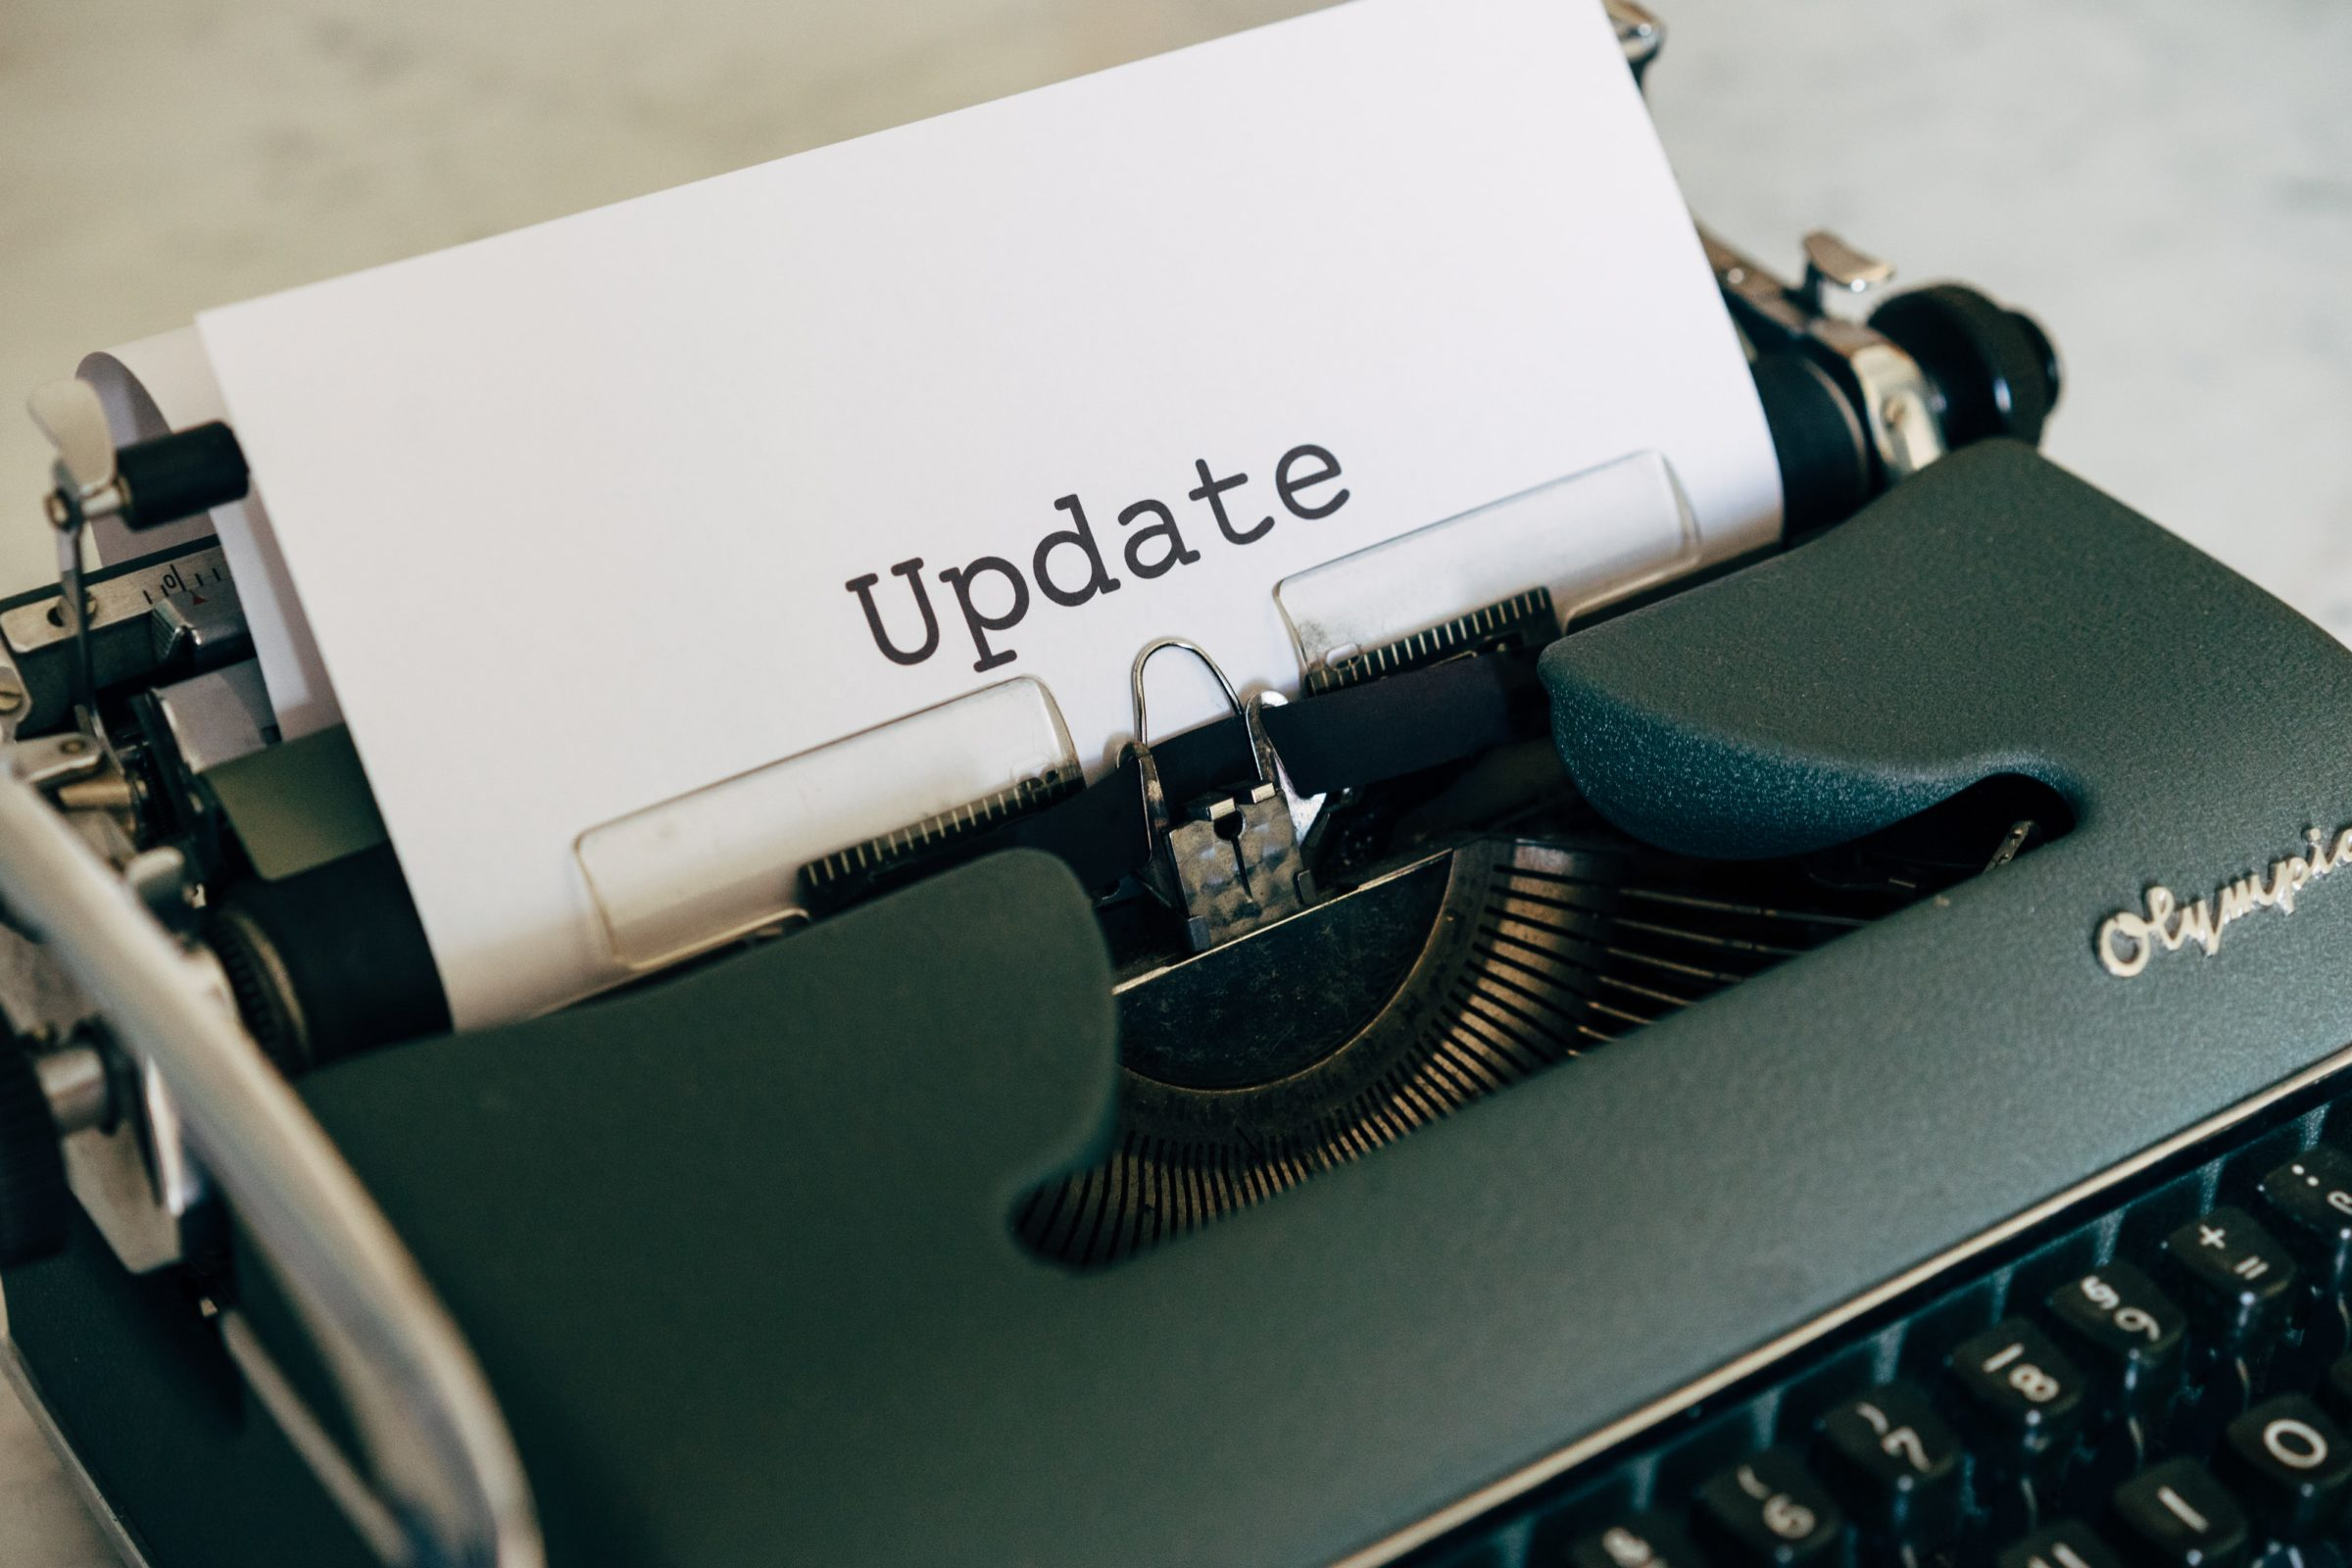 Google Chromecast update